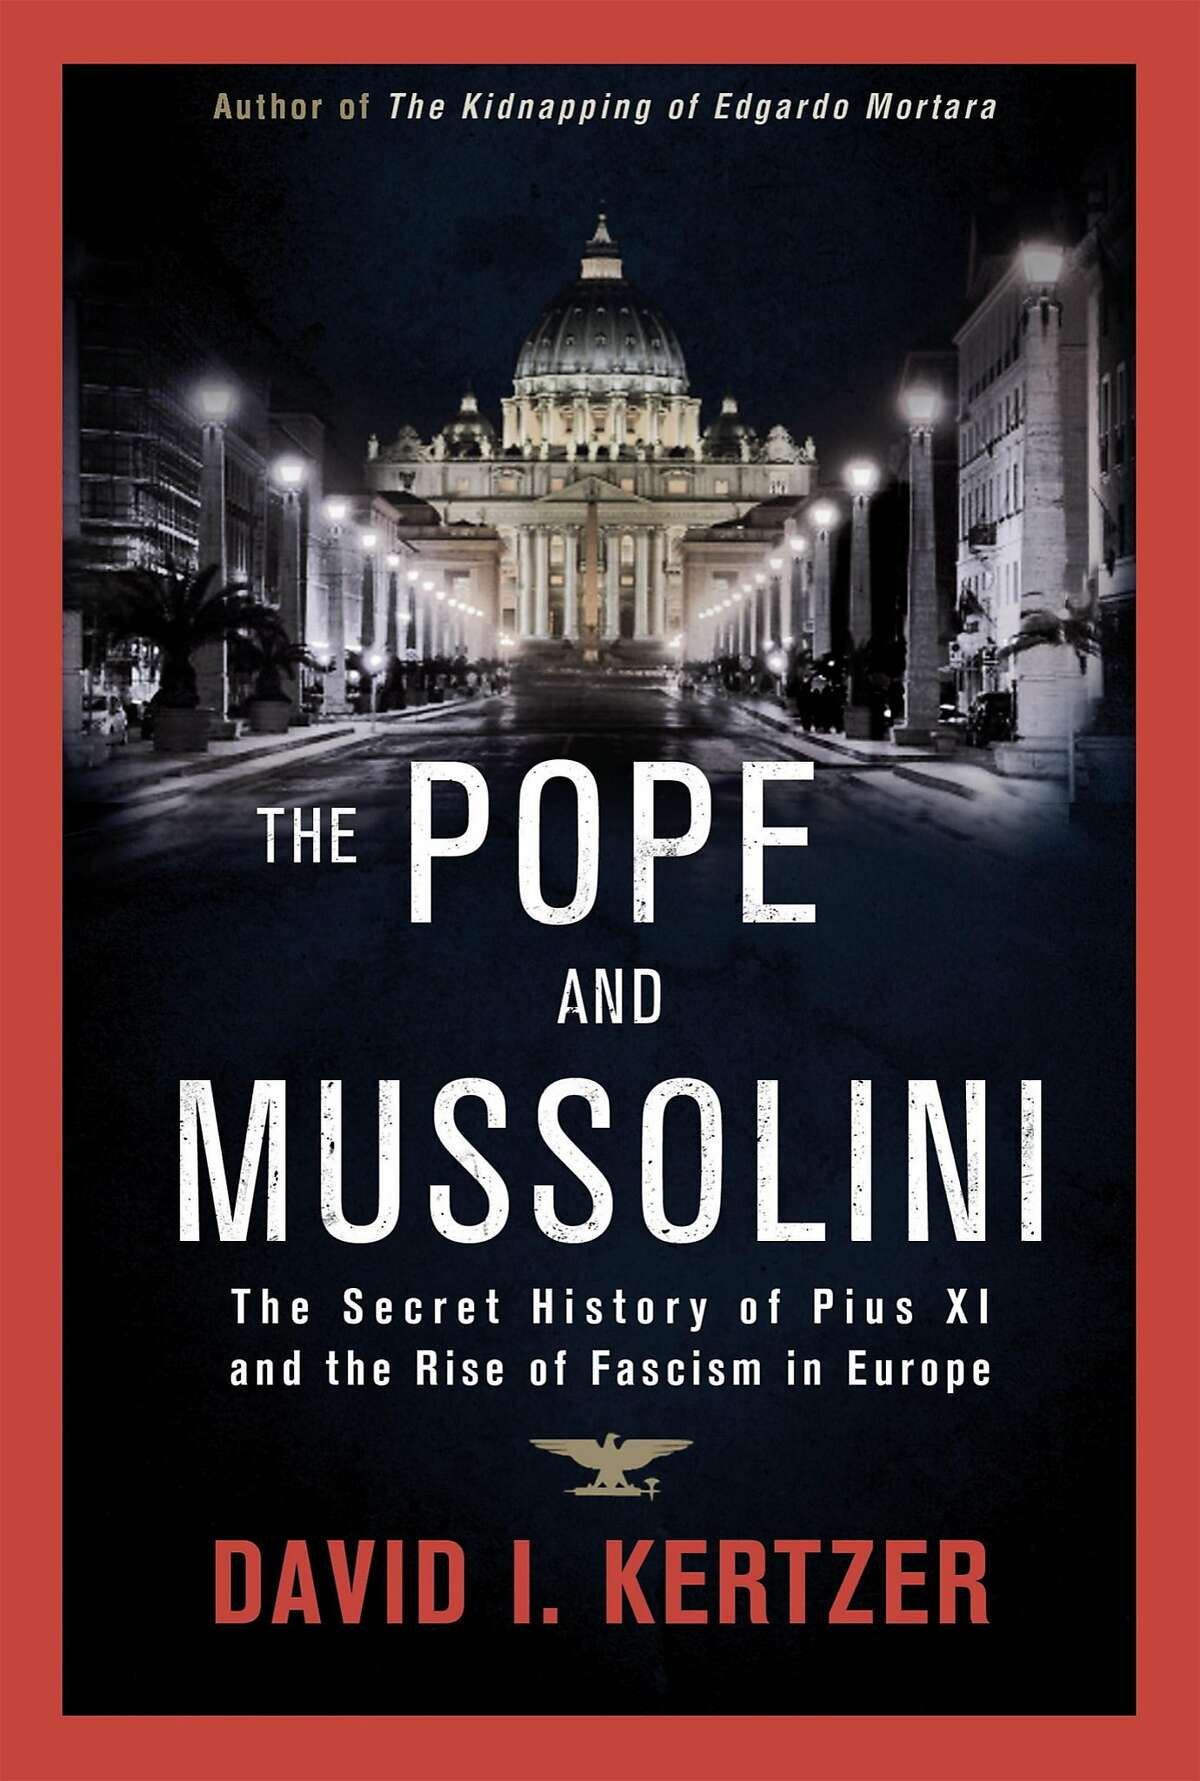 The Pope and Mussolini: The Secret History of Pius XI and the Rise of Fascism in Europe, by David Kertzer